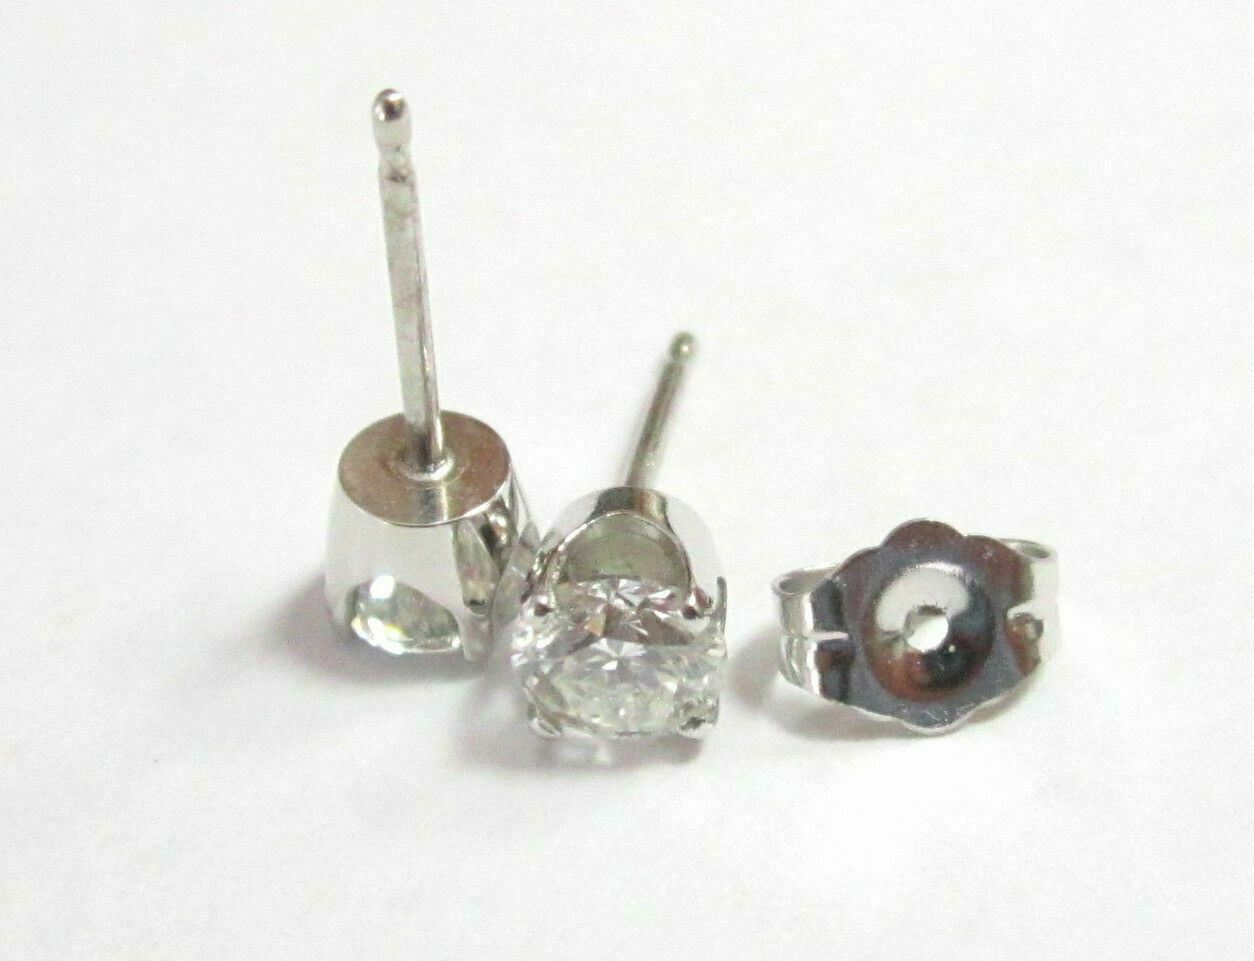 .69 Total Carats Round Cut Diamond Stud Earrings Push Back G-H SI1 14k WhiteGold